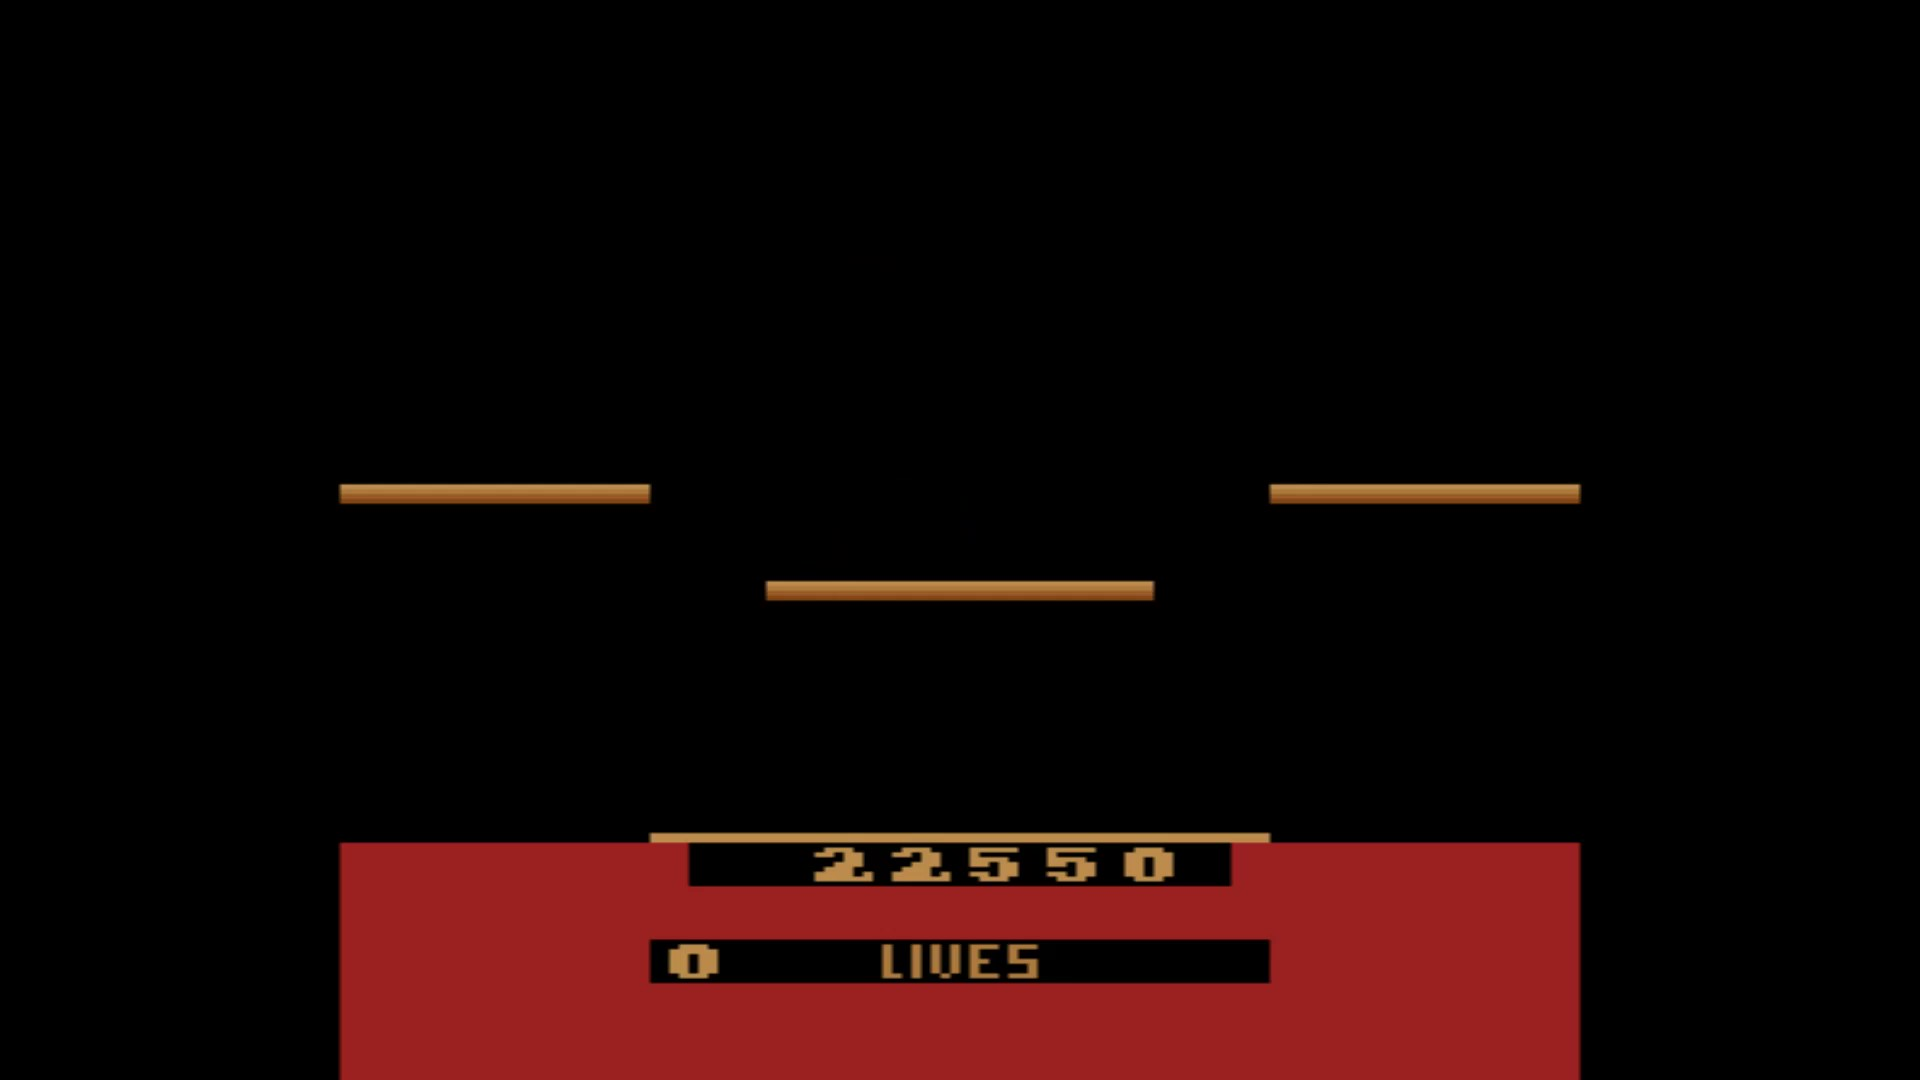 Joust 22,550 points